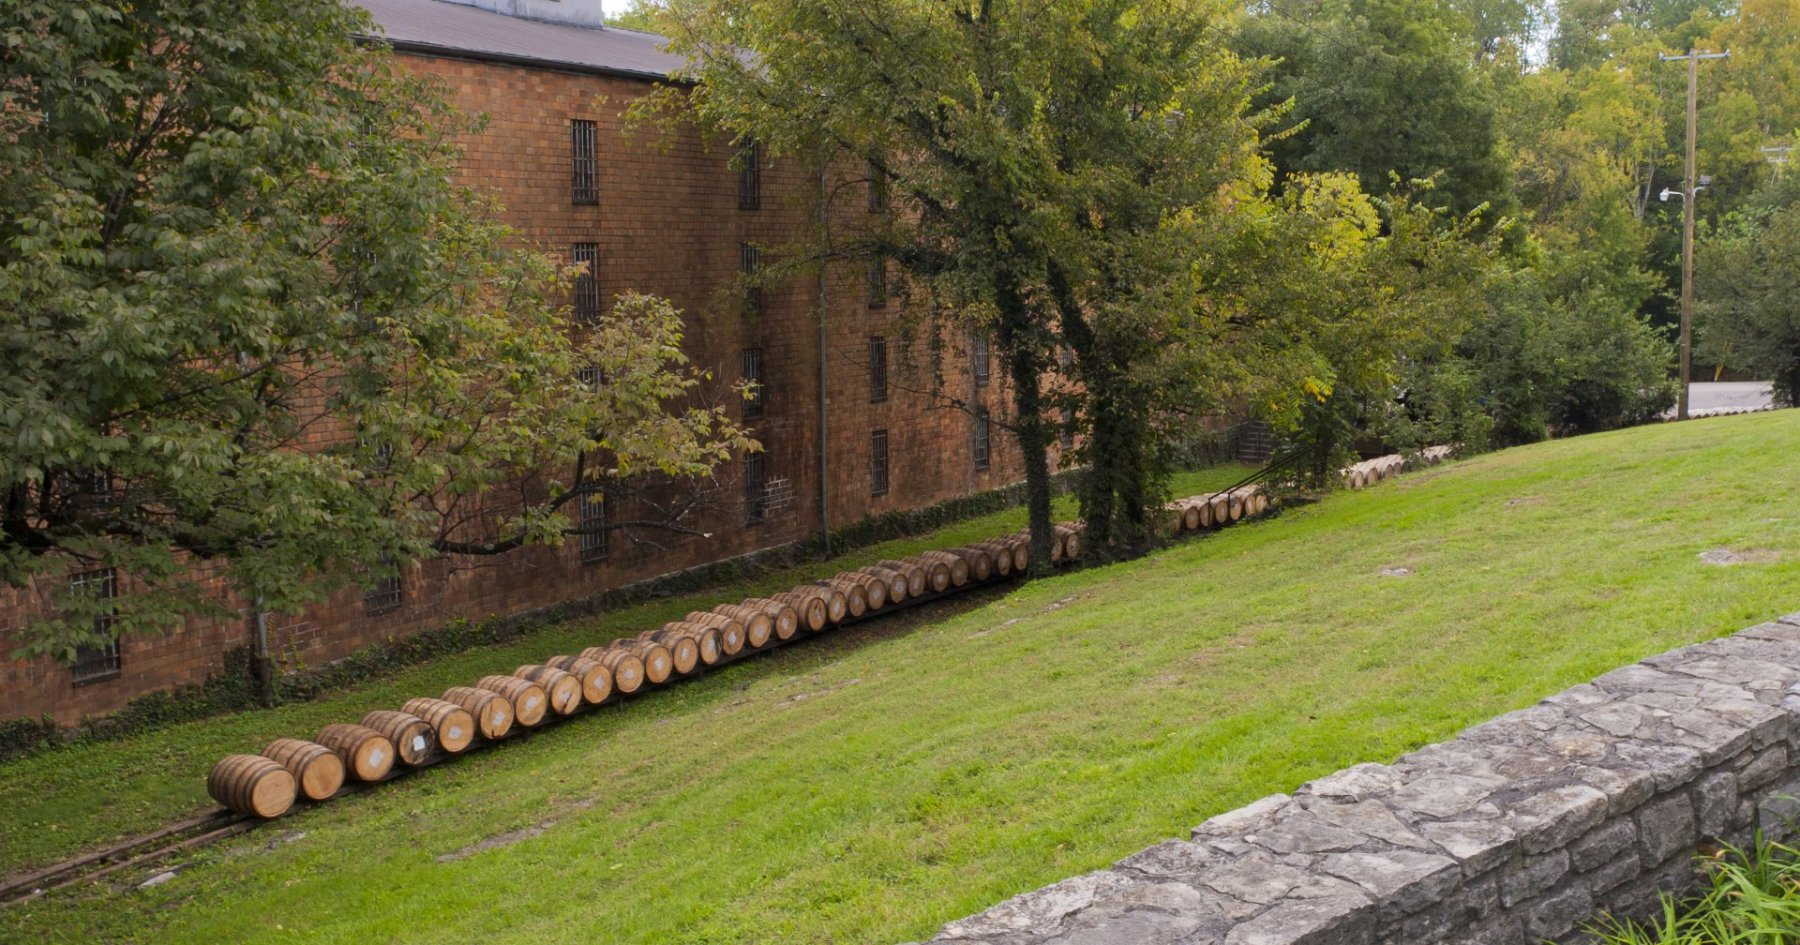 How to Talk Your Wife Into That Kentucky Bourbon Trail Vacation …